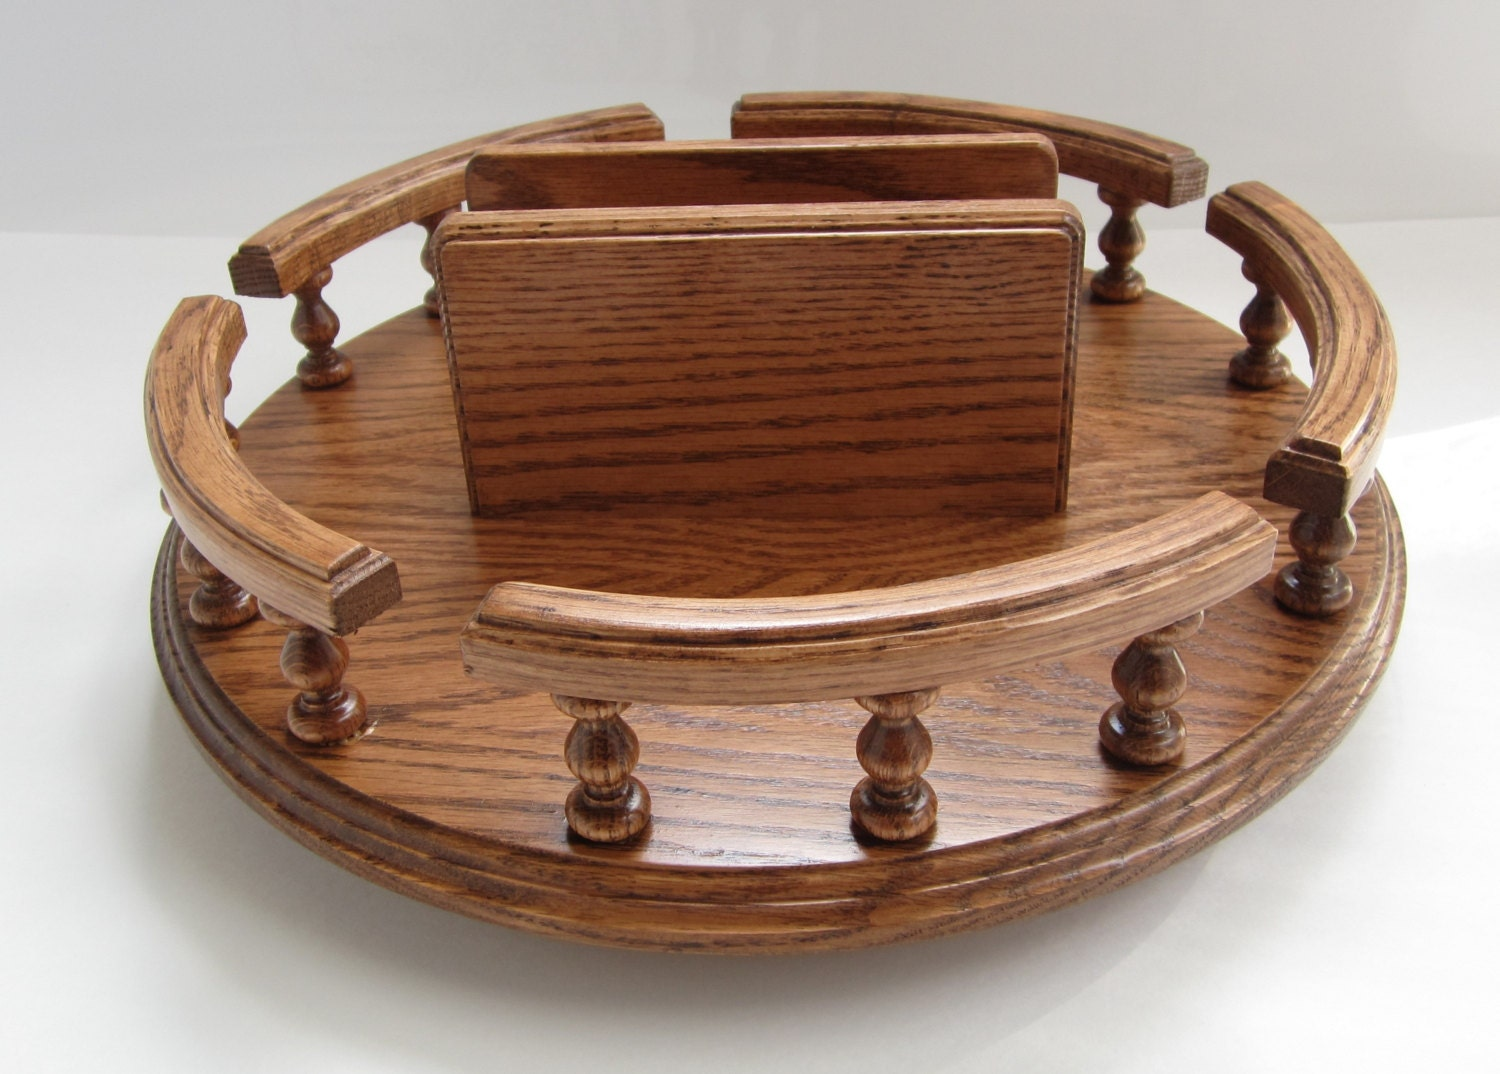 amish handcrafted 14 lazy susan turntable by